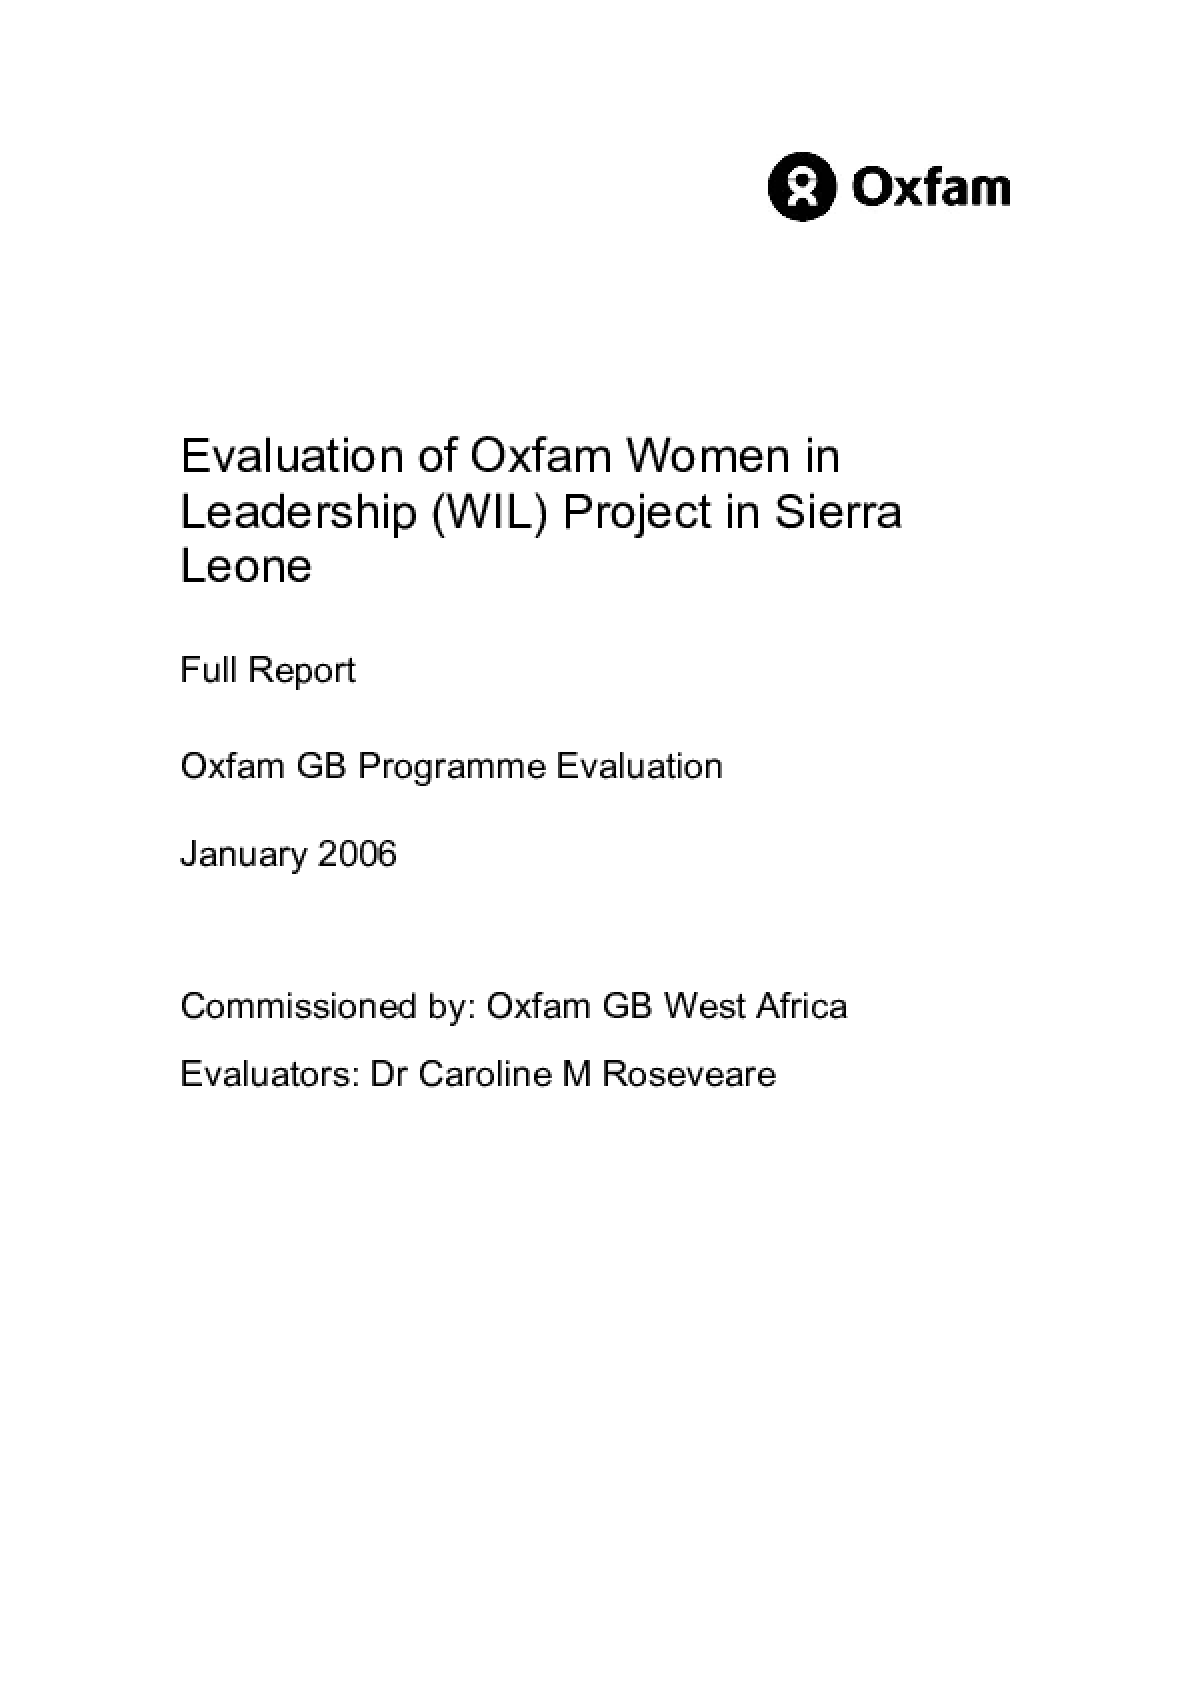 Evaluation of Oxfam Women in Leadership (WIL) Project in Sierra Leone